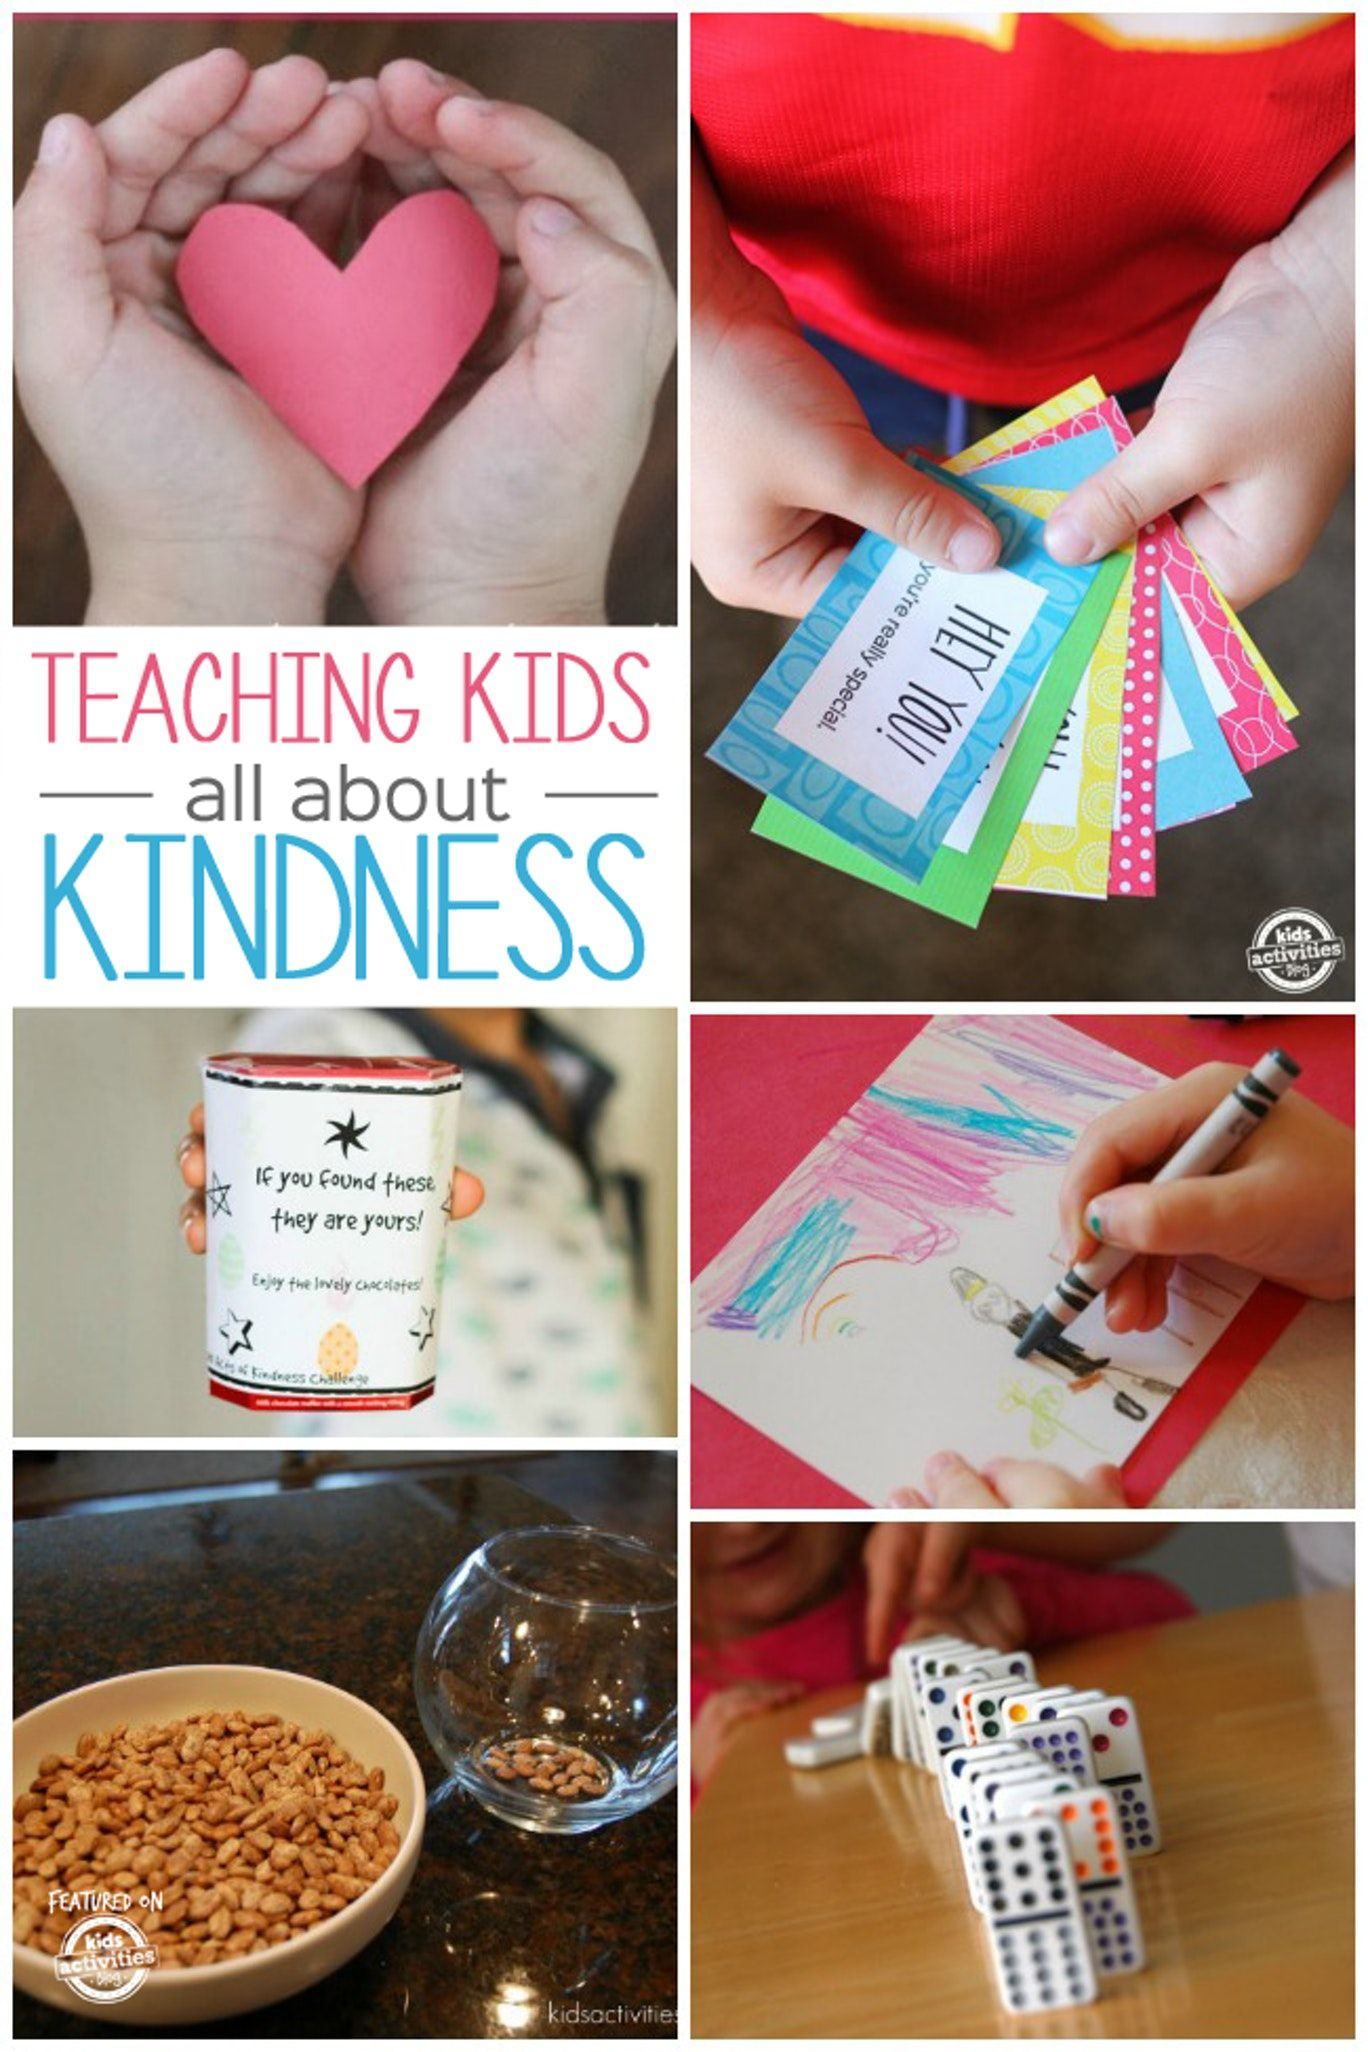 55 Kindness Activities For Kids